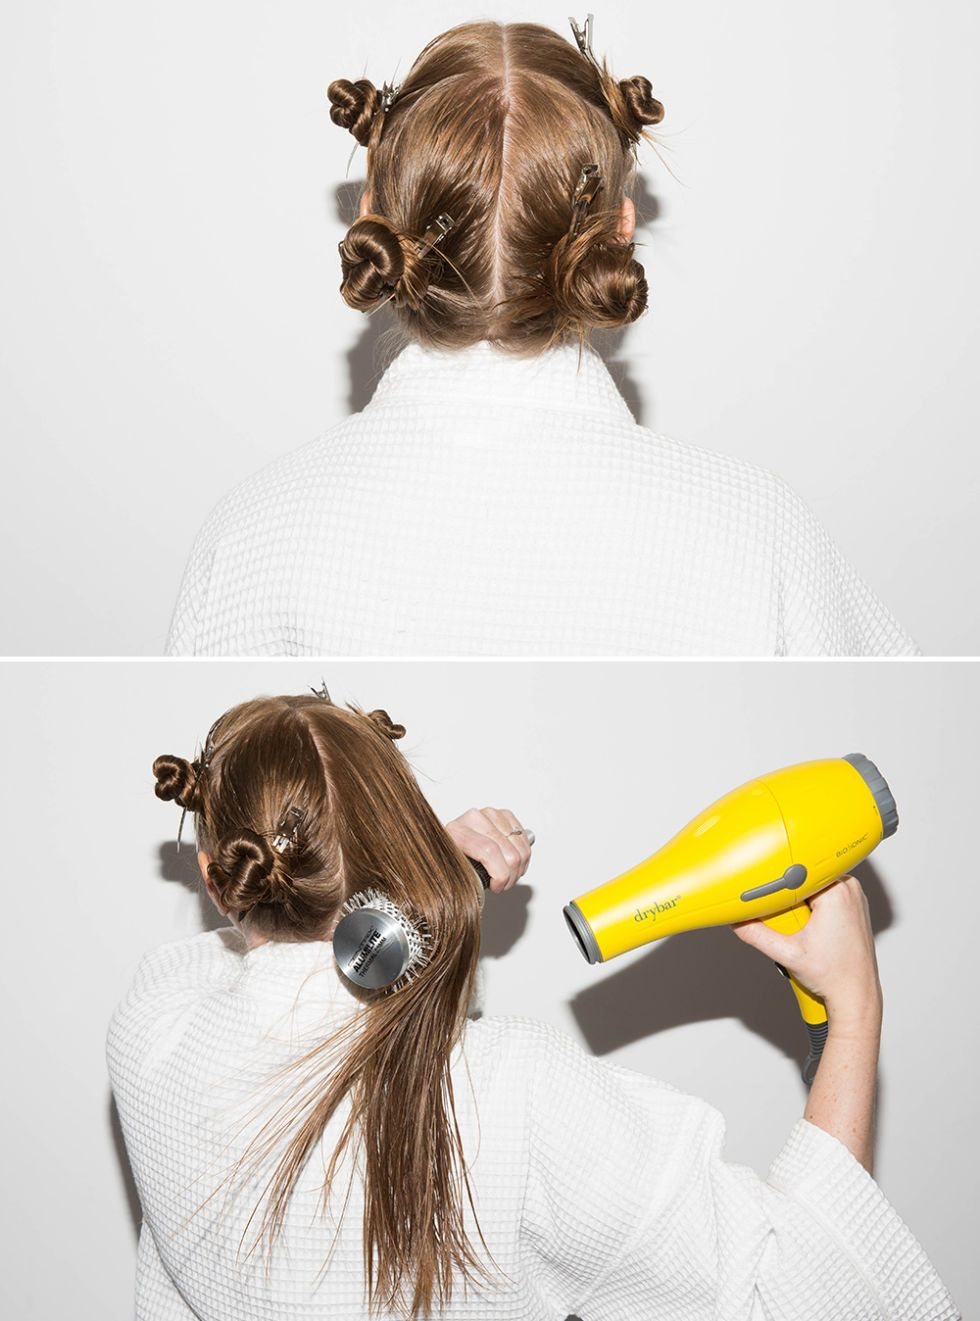 23 Life Altering Ways To Use A Blow Dryer Blow Dry Hair Hair With Flair Blow Dry Hair Faster